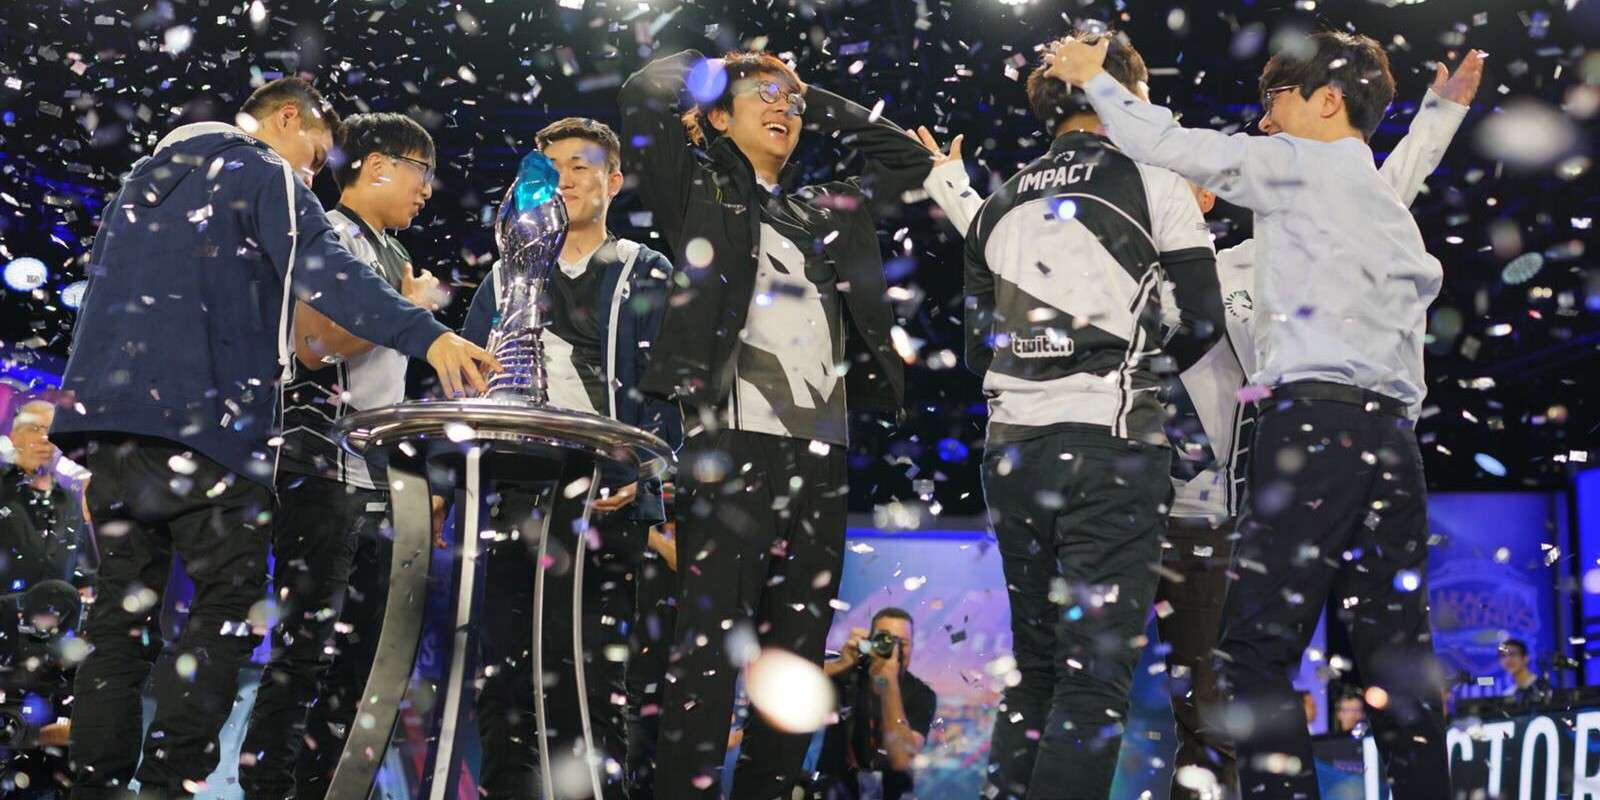 Pictures of Team Liquid and Fnatic League of Legends winning the LCS Spring Split